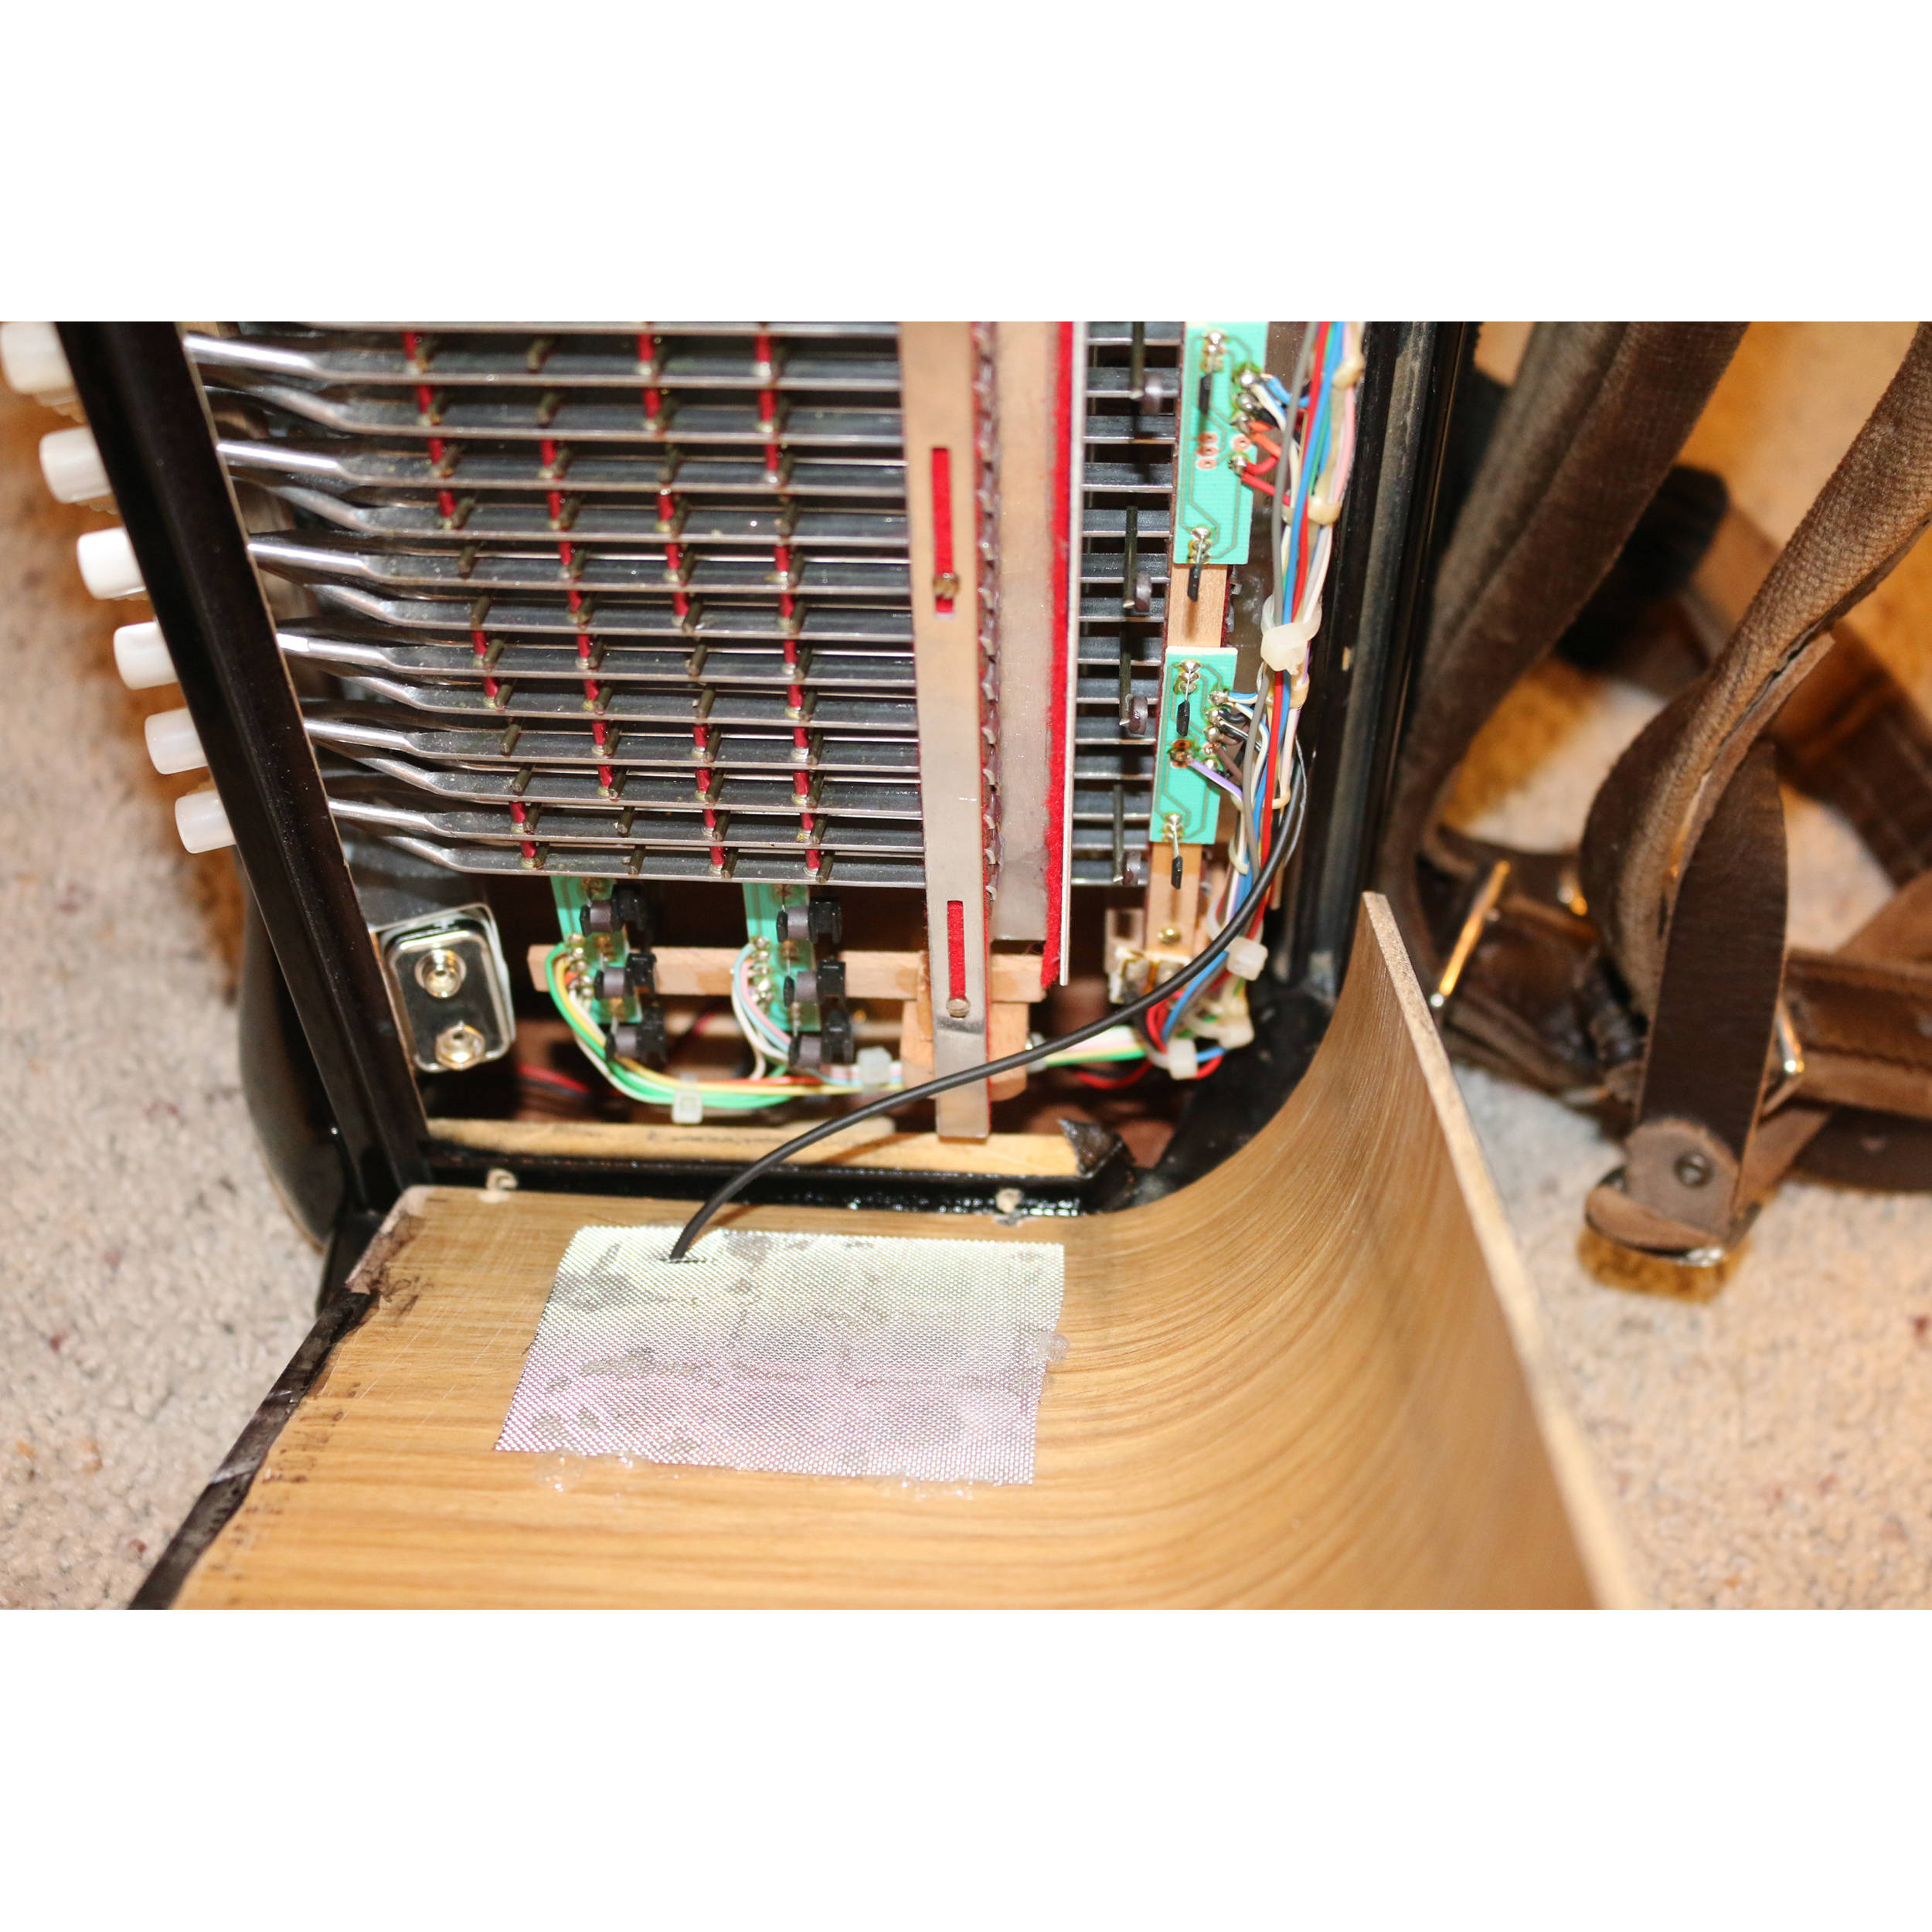 AMT ACCL Single Internal Left-Hand Wired Accordion ACCL B&H